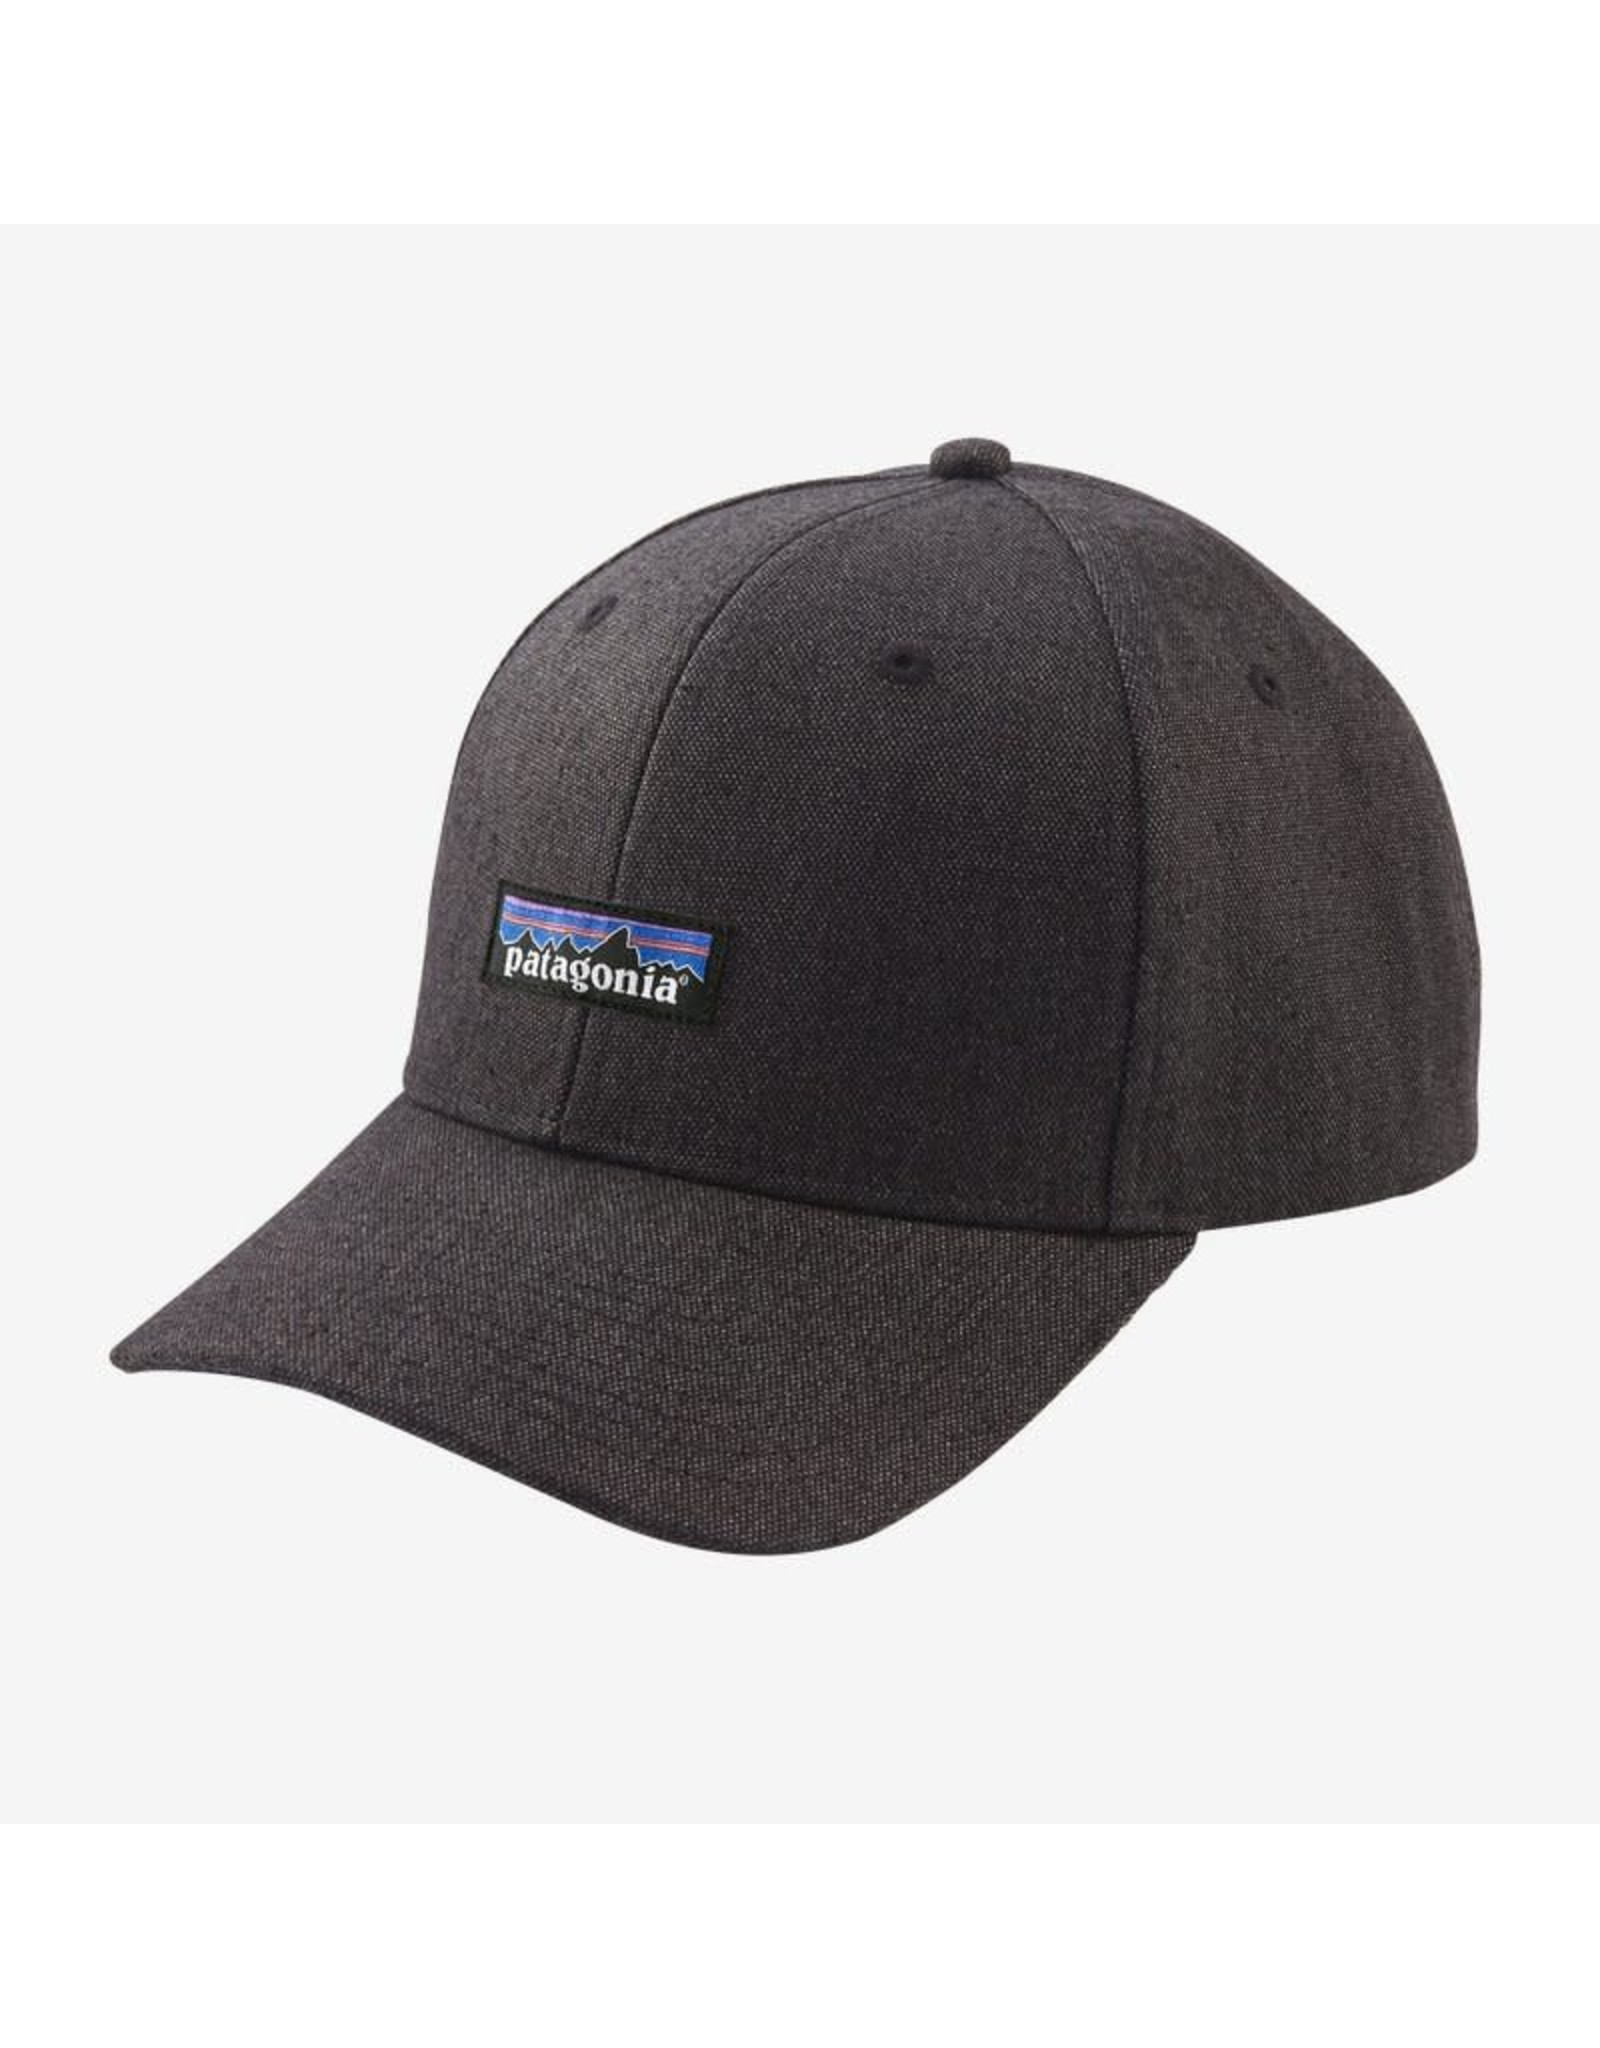 Patagonia Patagonia - Casquette homme tin shed p-6 logo ink black